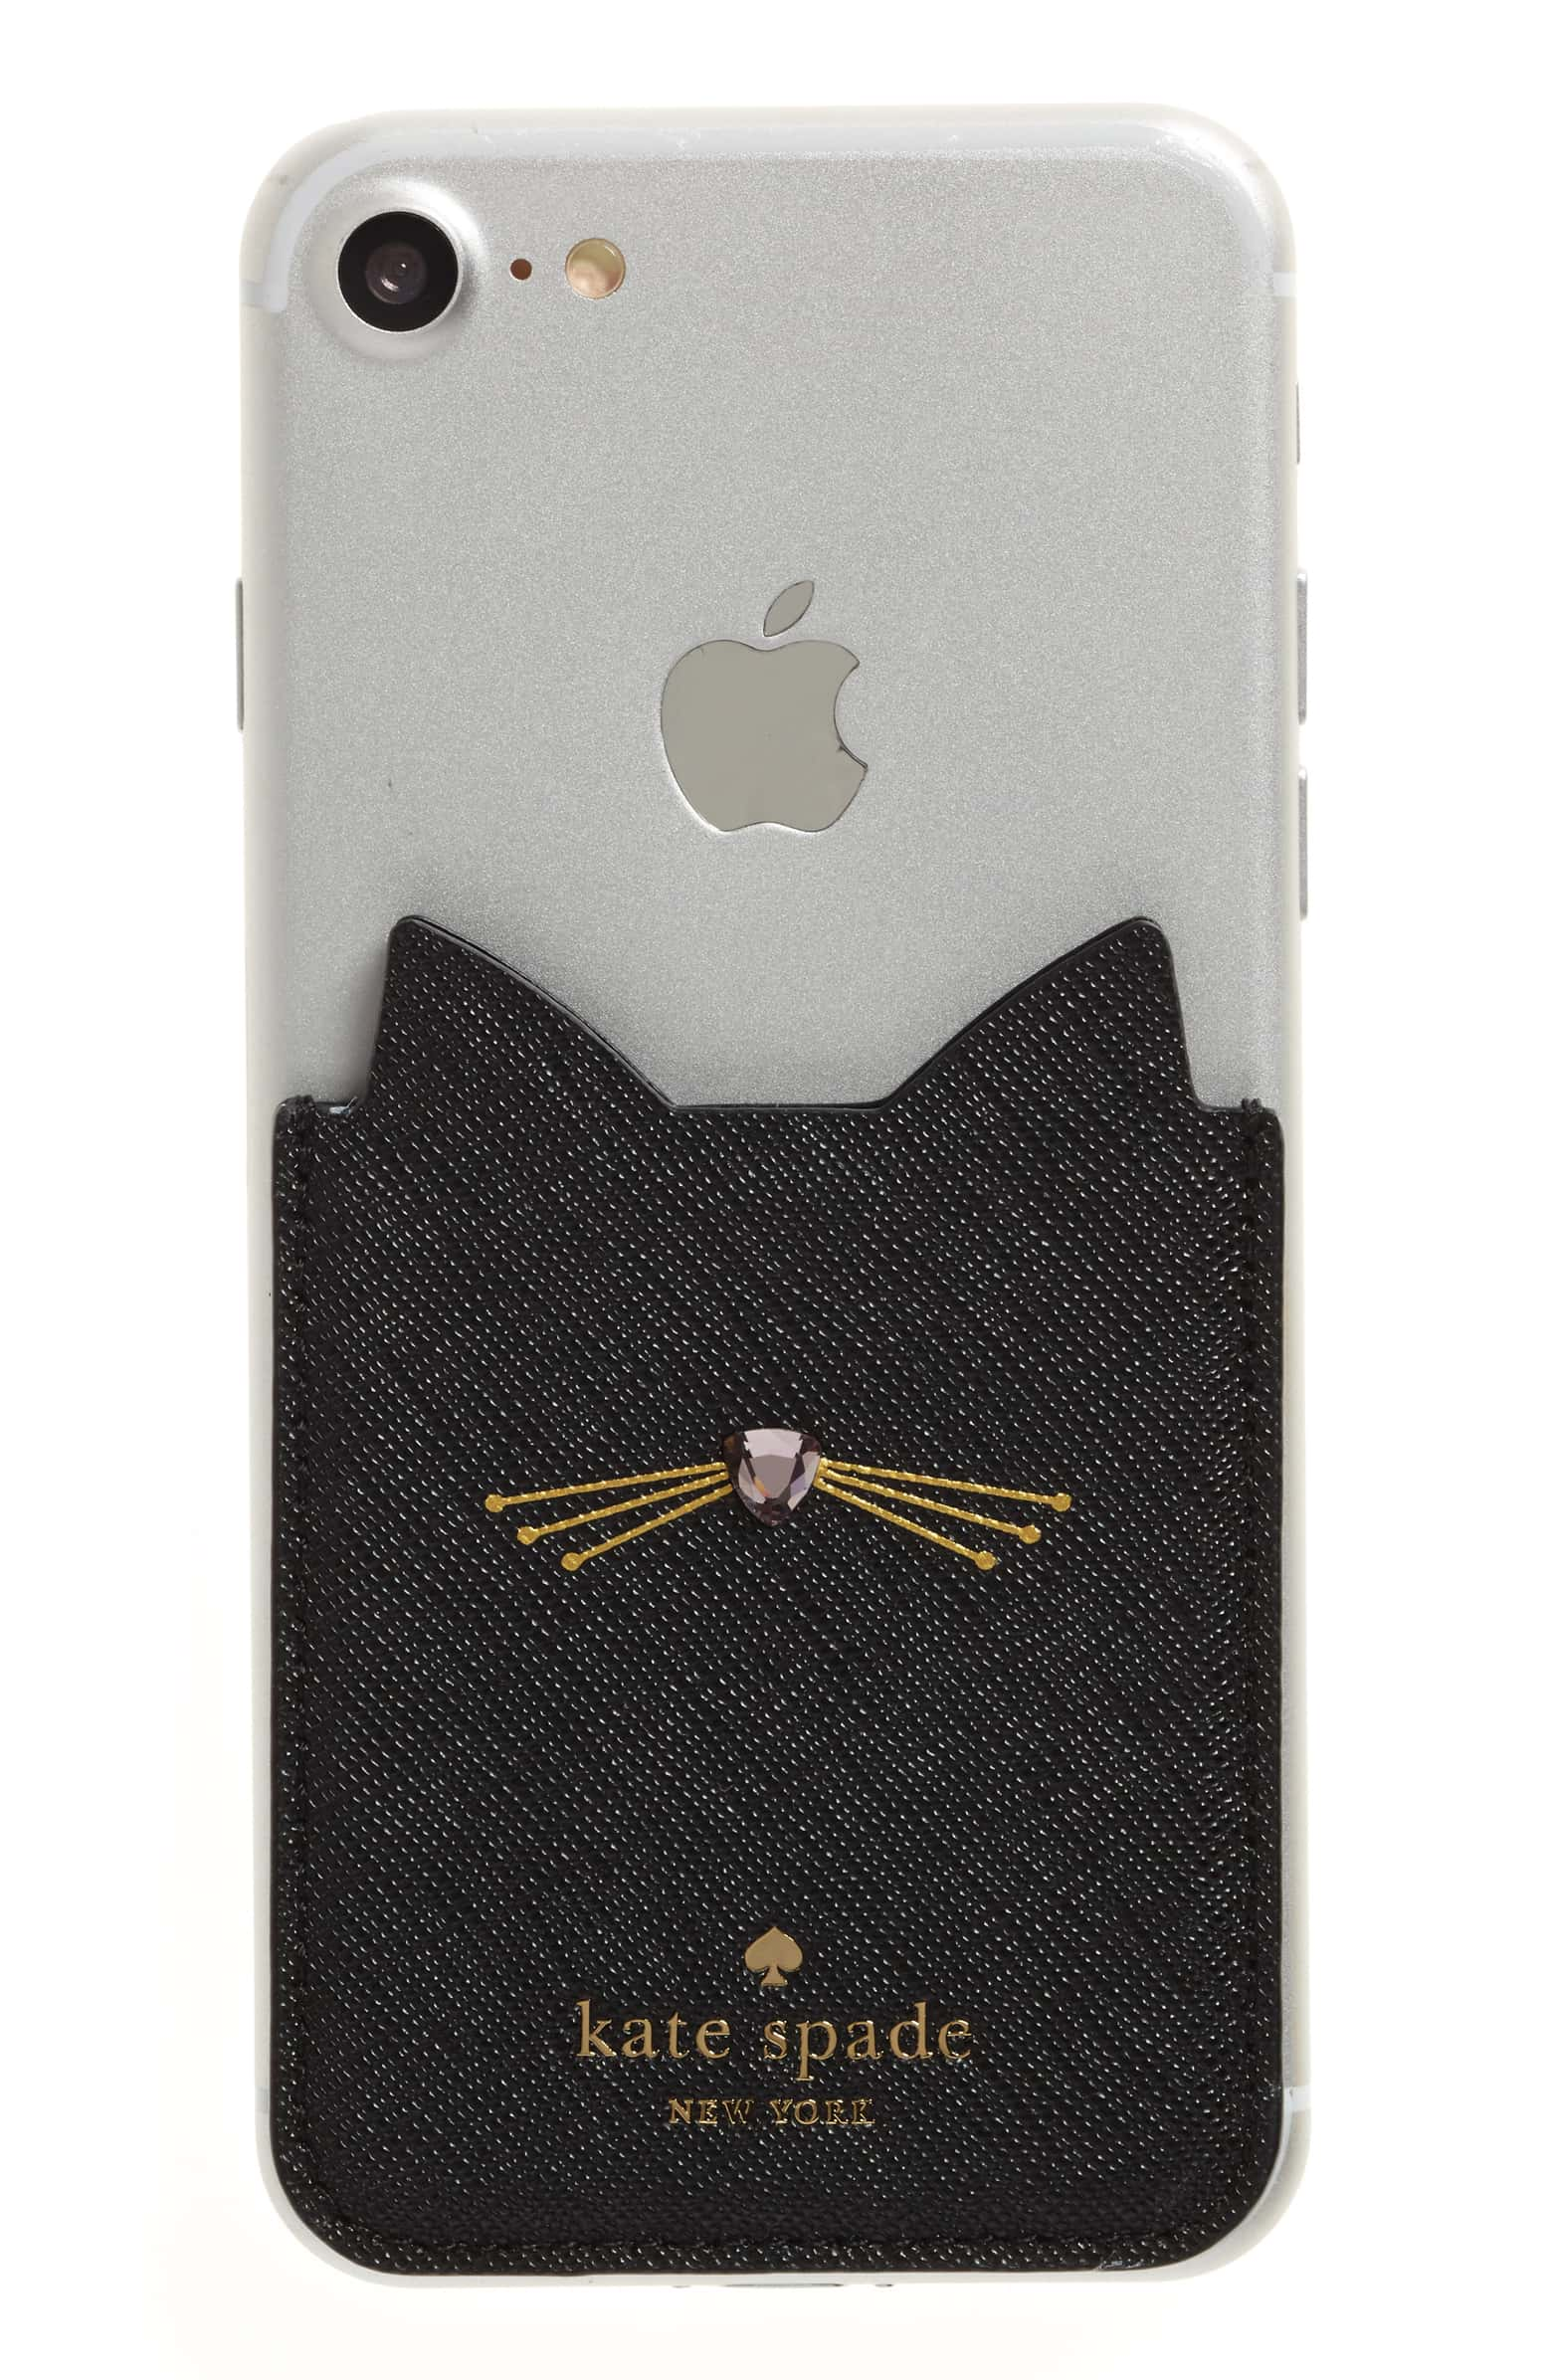 best kate spade pieces phone pocket